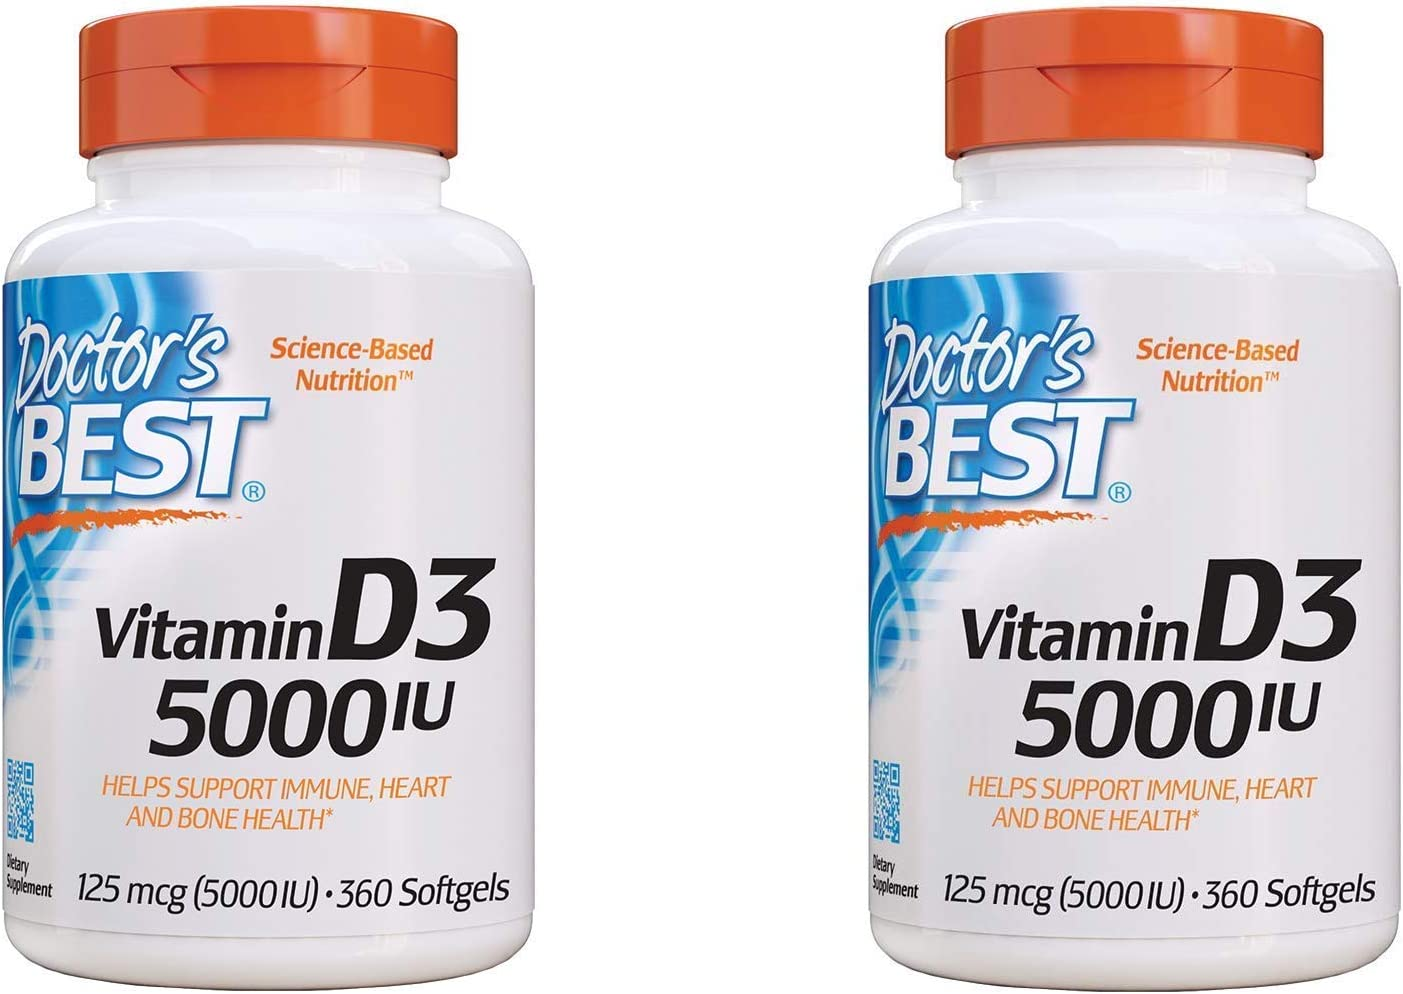 Doctor's Best Vitamin D3 5000IU, Non-GMO, Gluten Free, Soy Free, Regulates Immune Function, Supports Healthy Bones